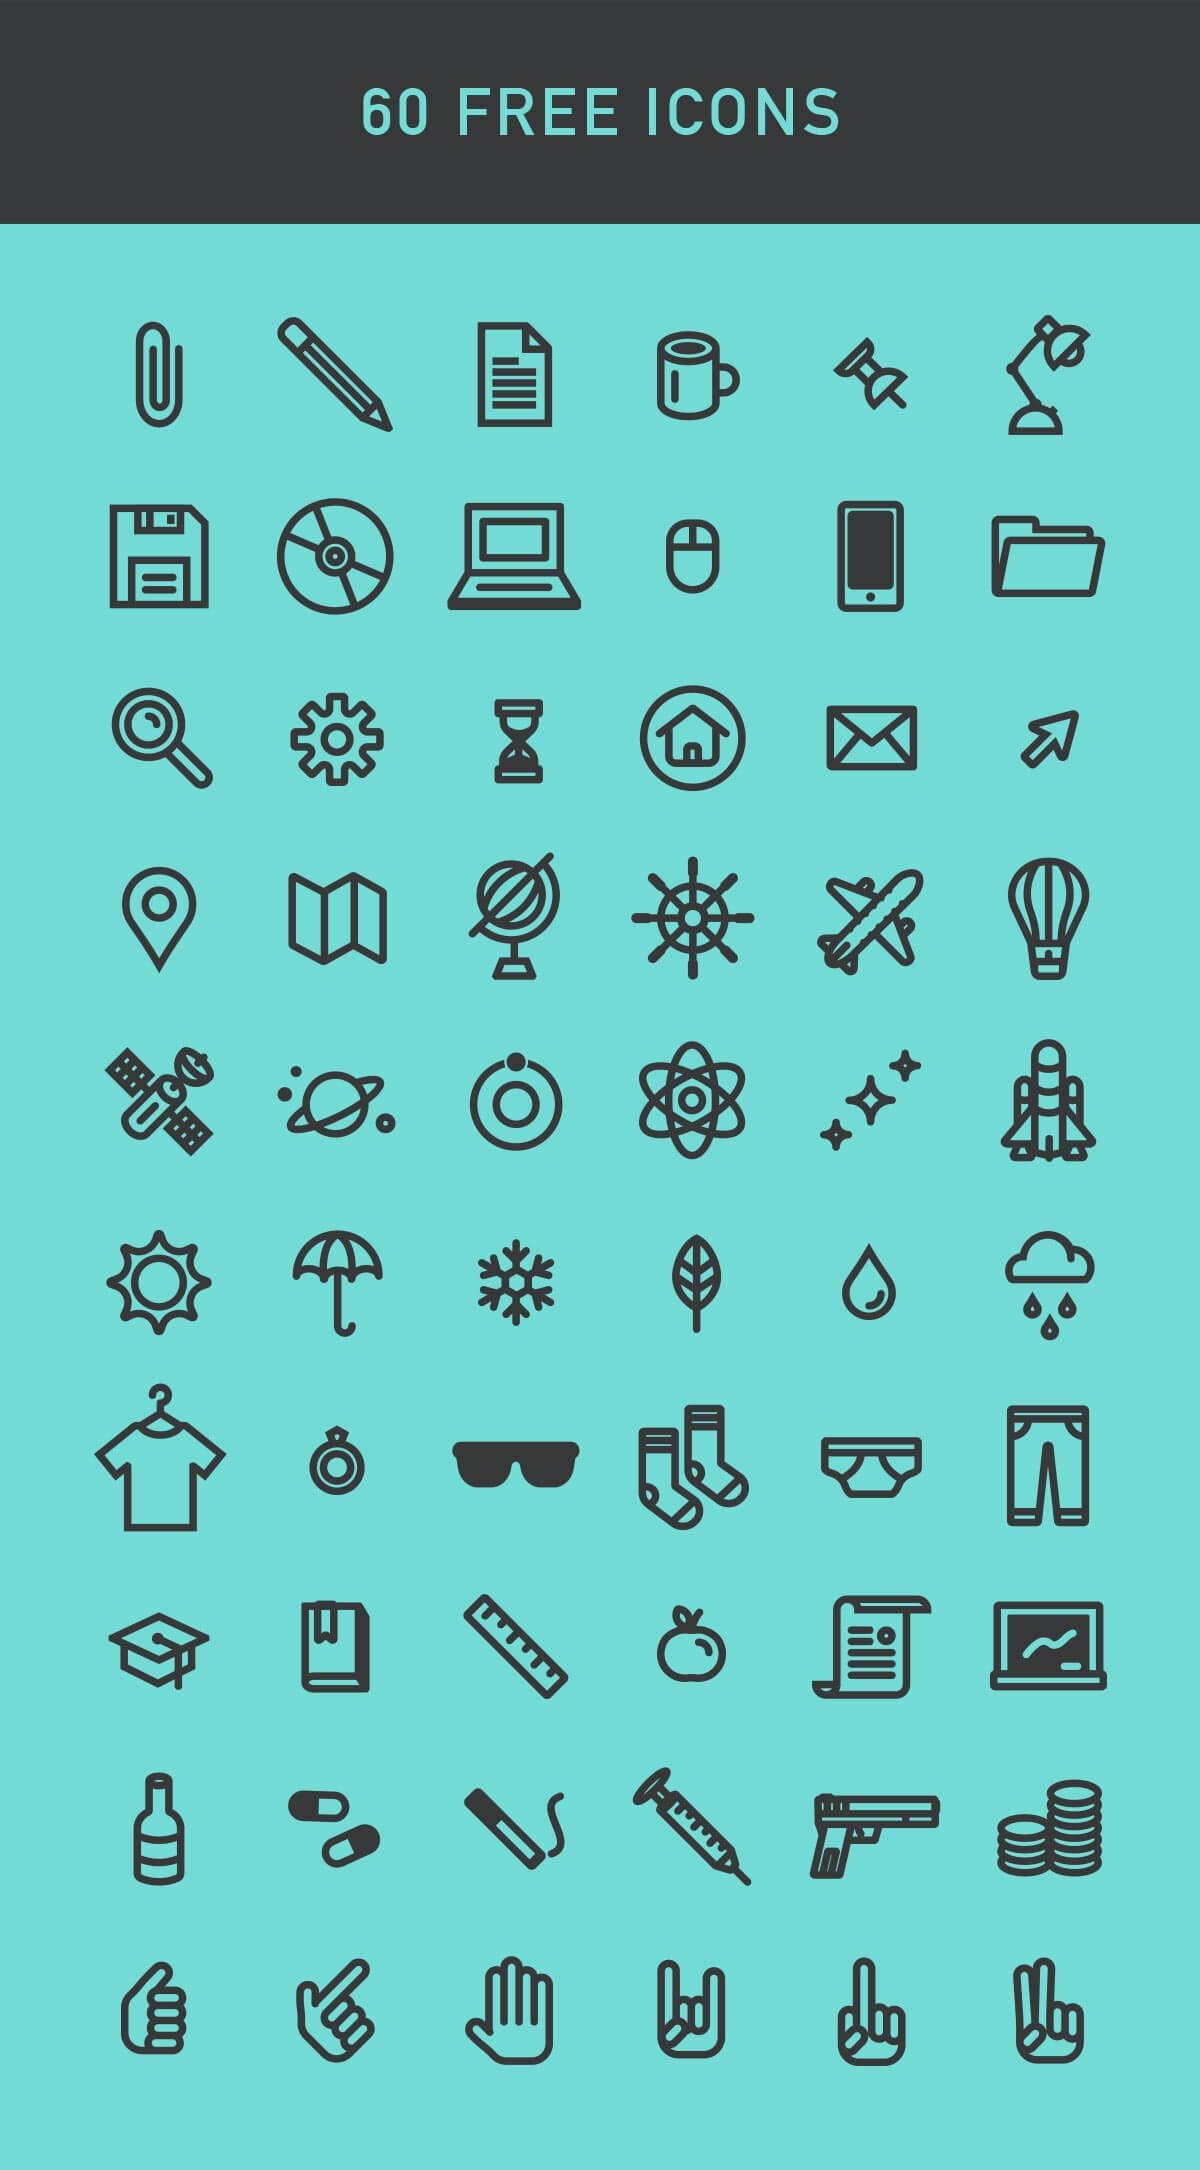 60 Free Vector Icons Pack